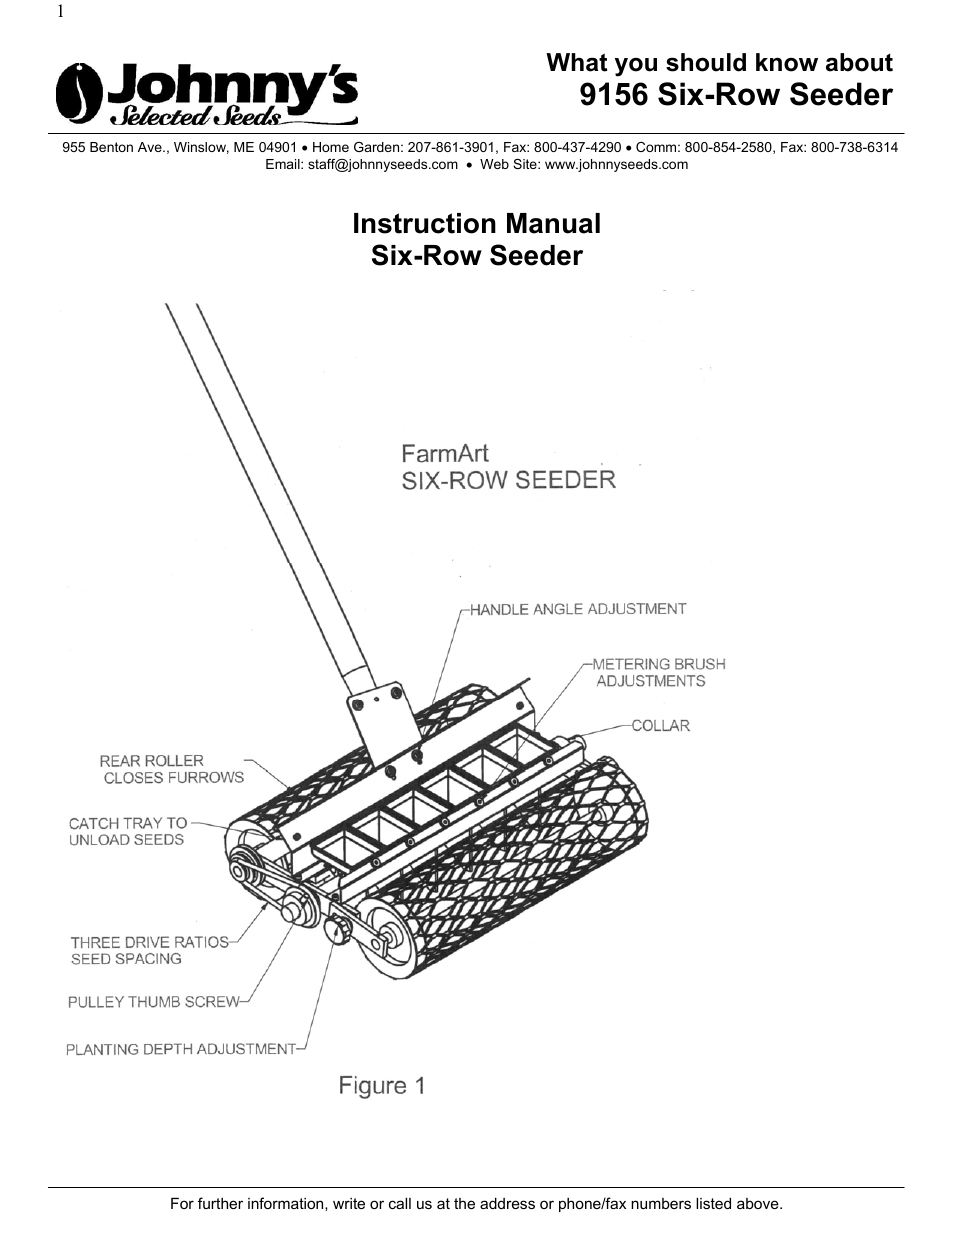 Johnny's Selected Seeds SIX-ROW SEEDER 9156 User Manual